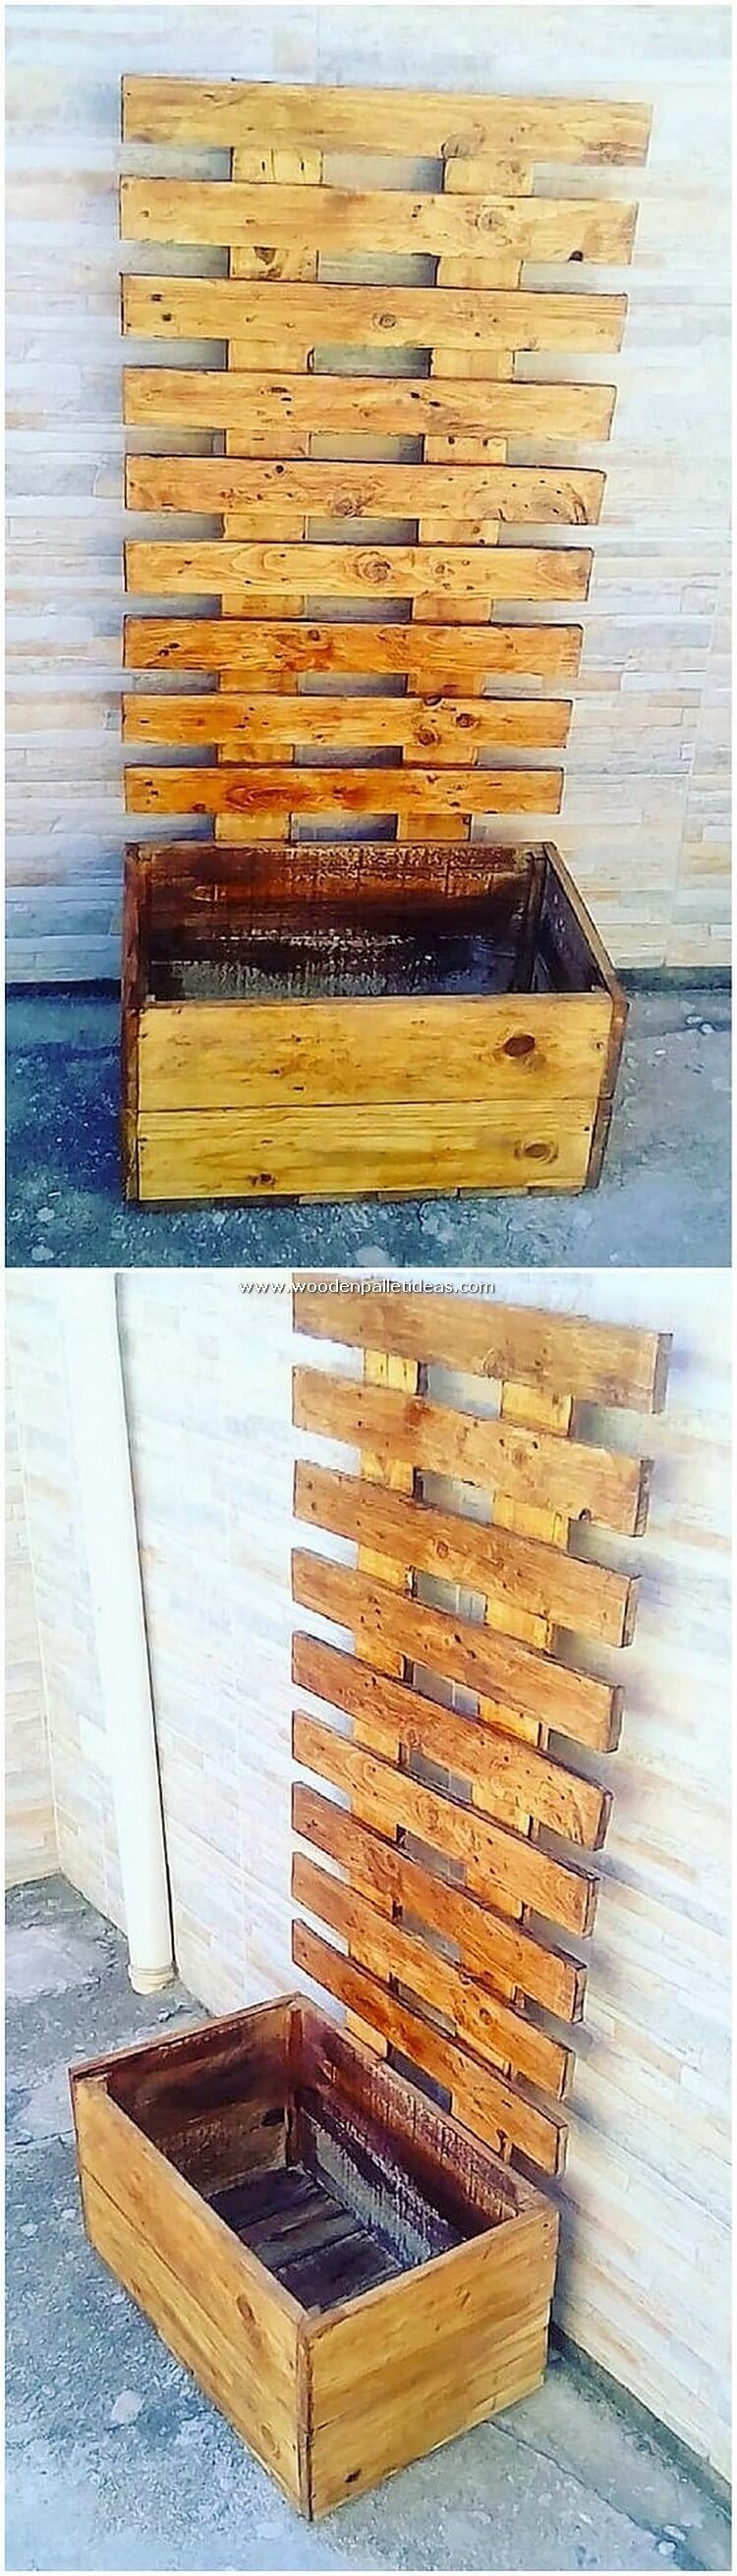 Wood Pallet Table Planter